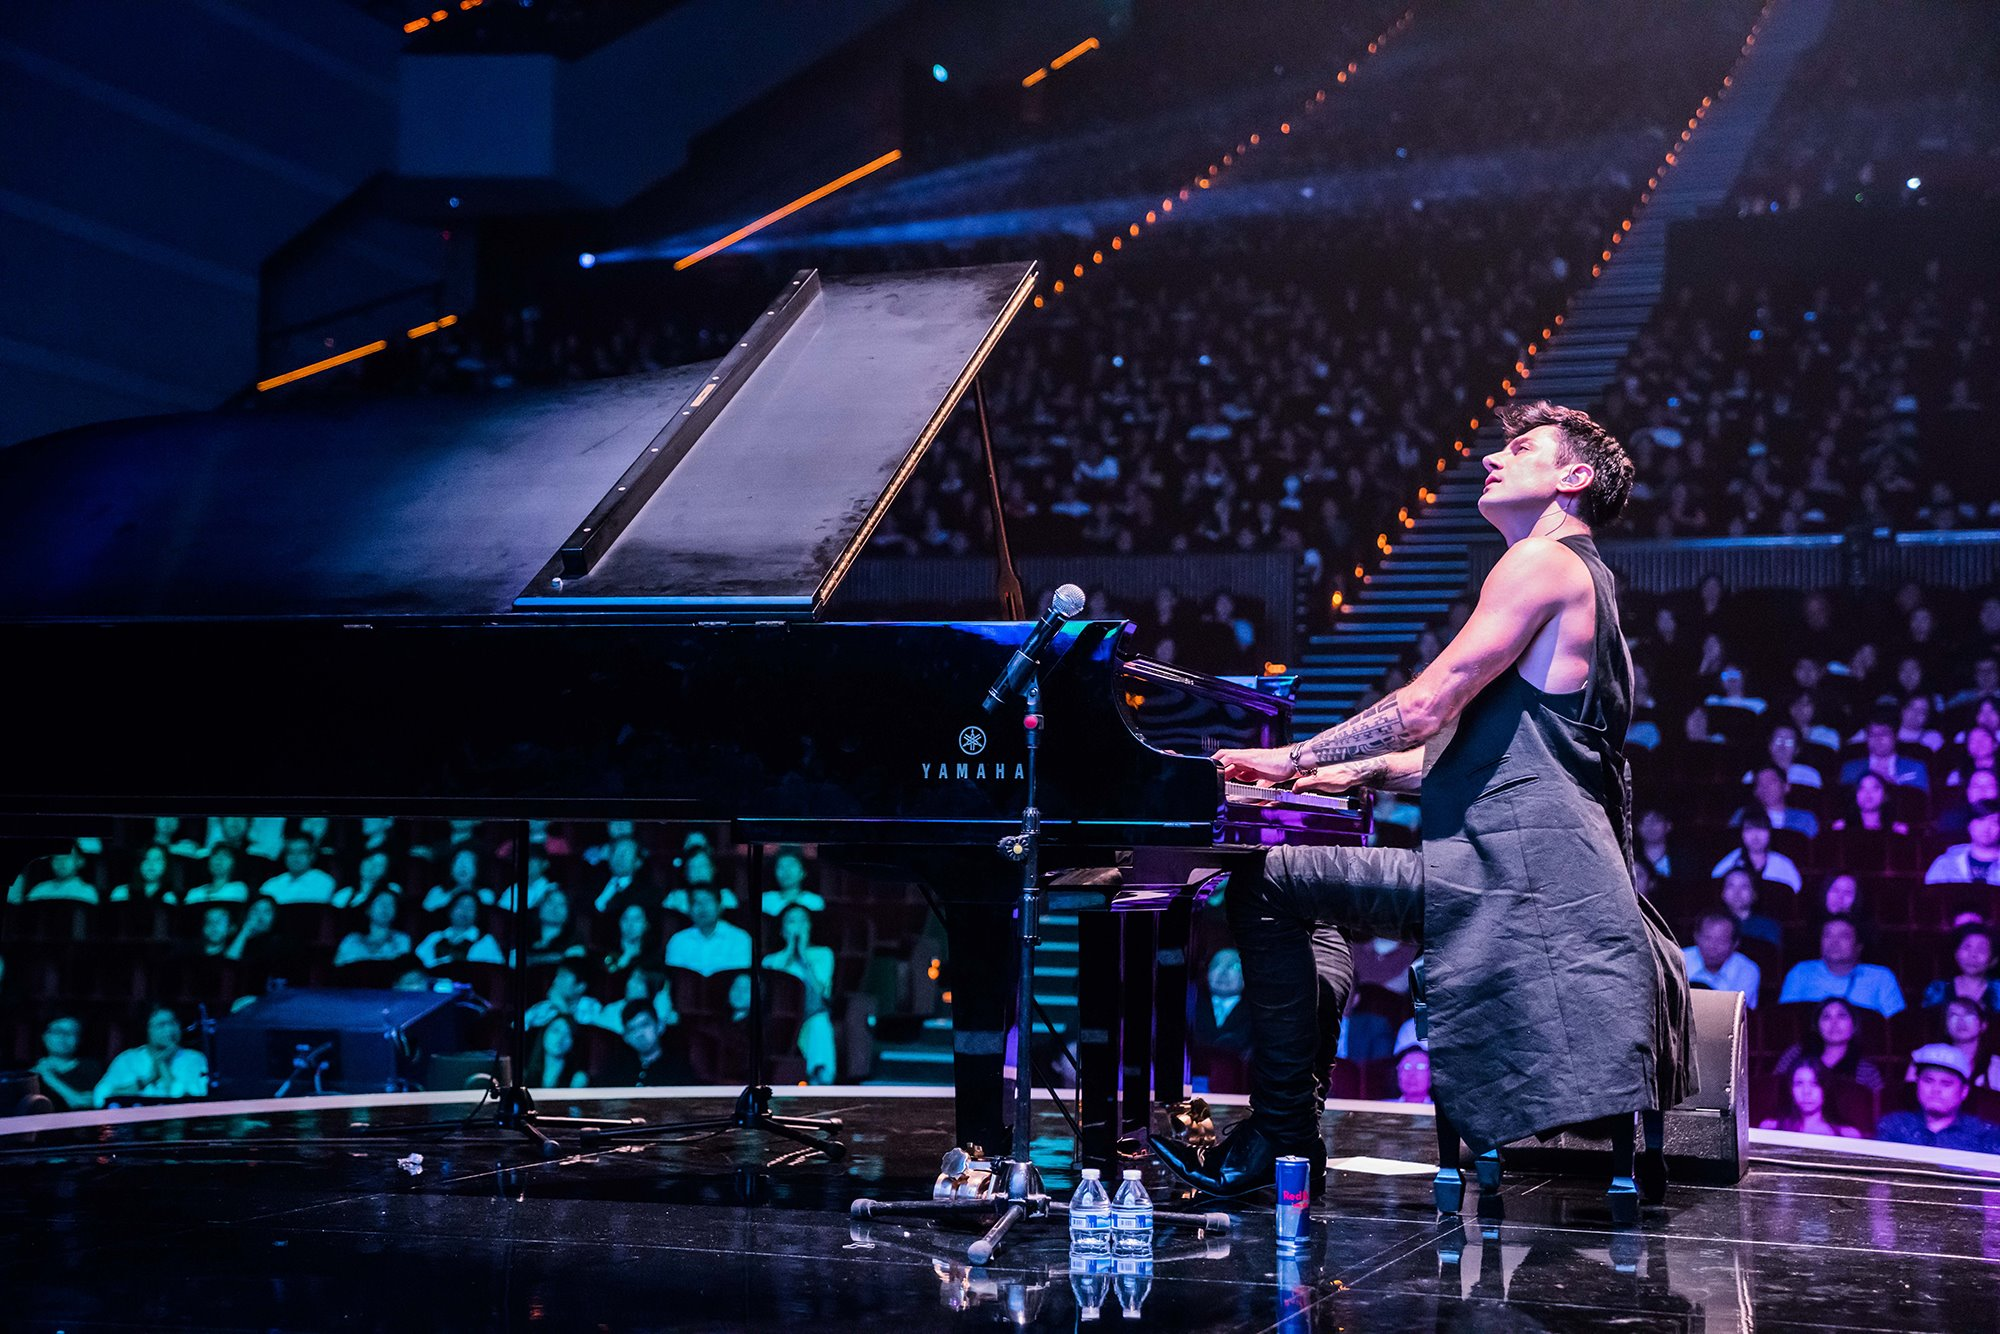 Maksim Mrvica performing on the piano in from of a crowd